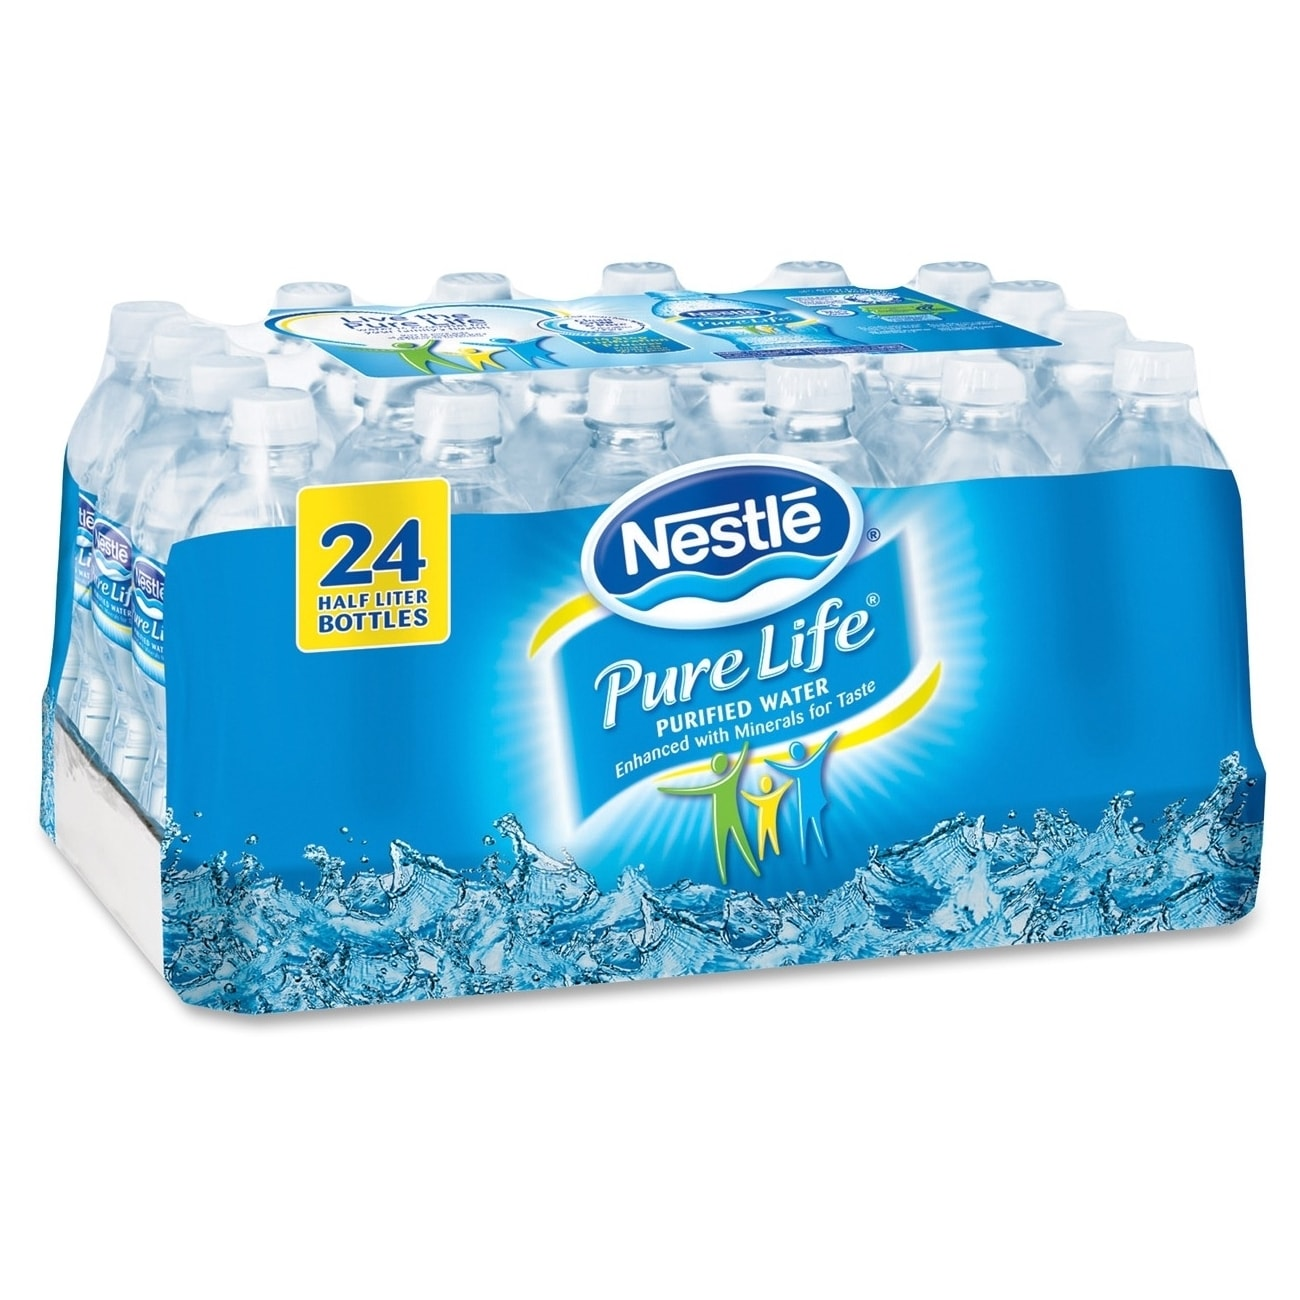 Nestle Pure Life Purified Bottled Water - (24 PerCarton) ...